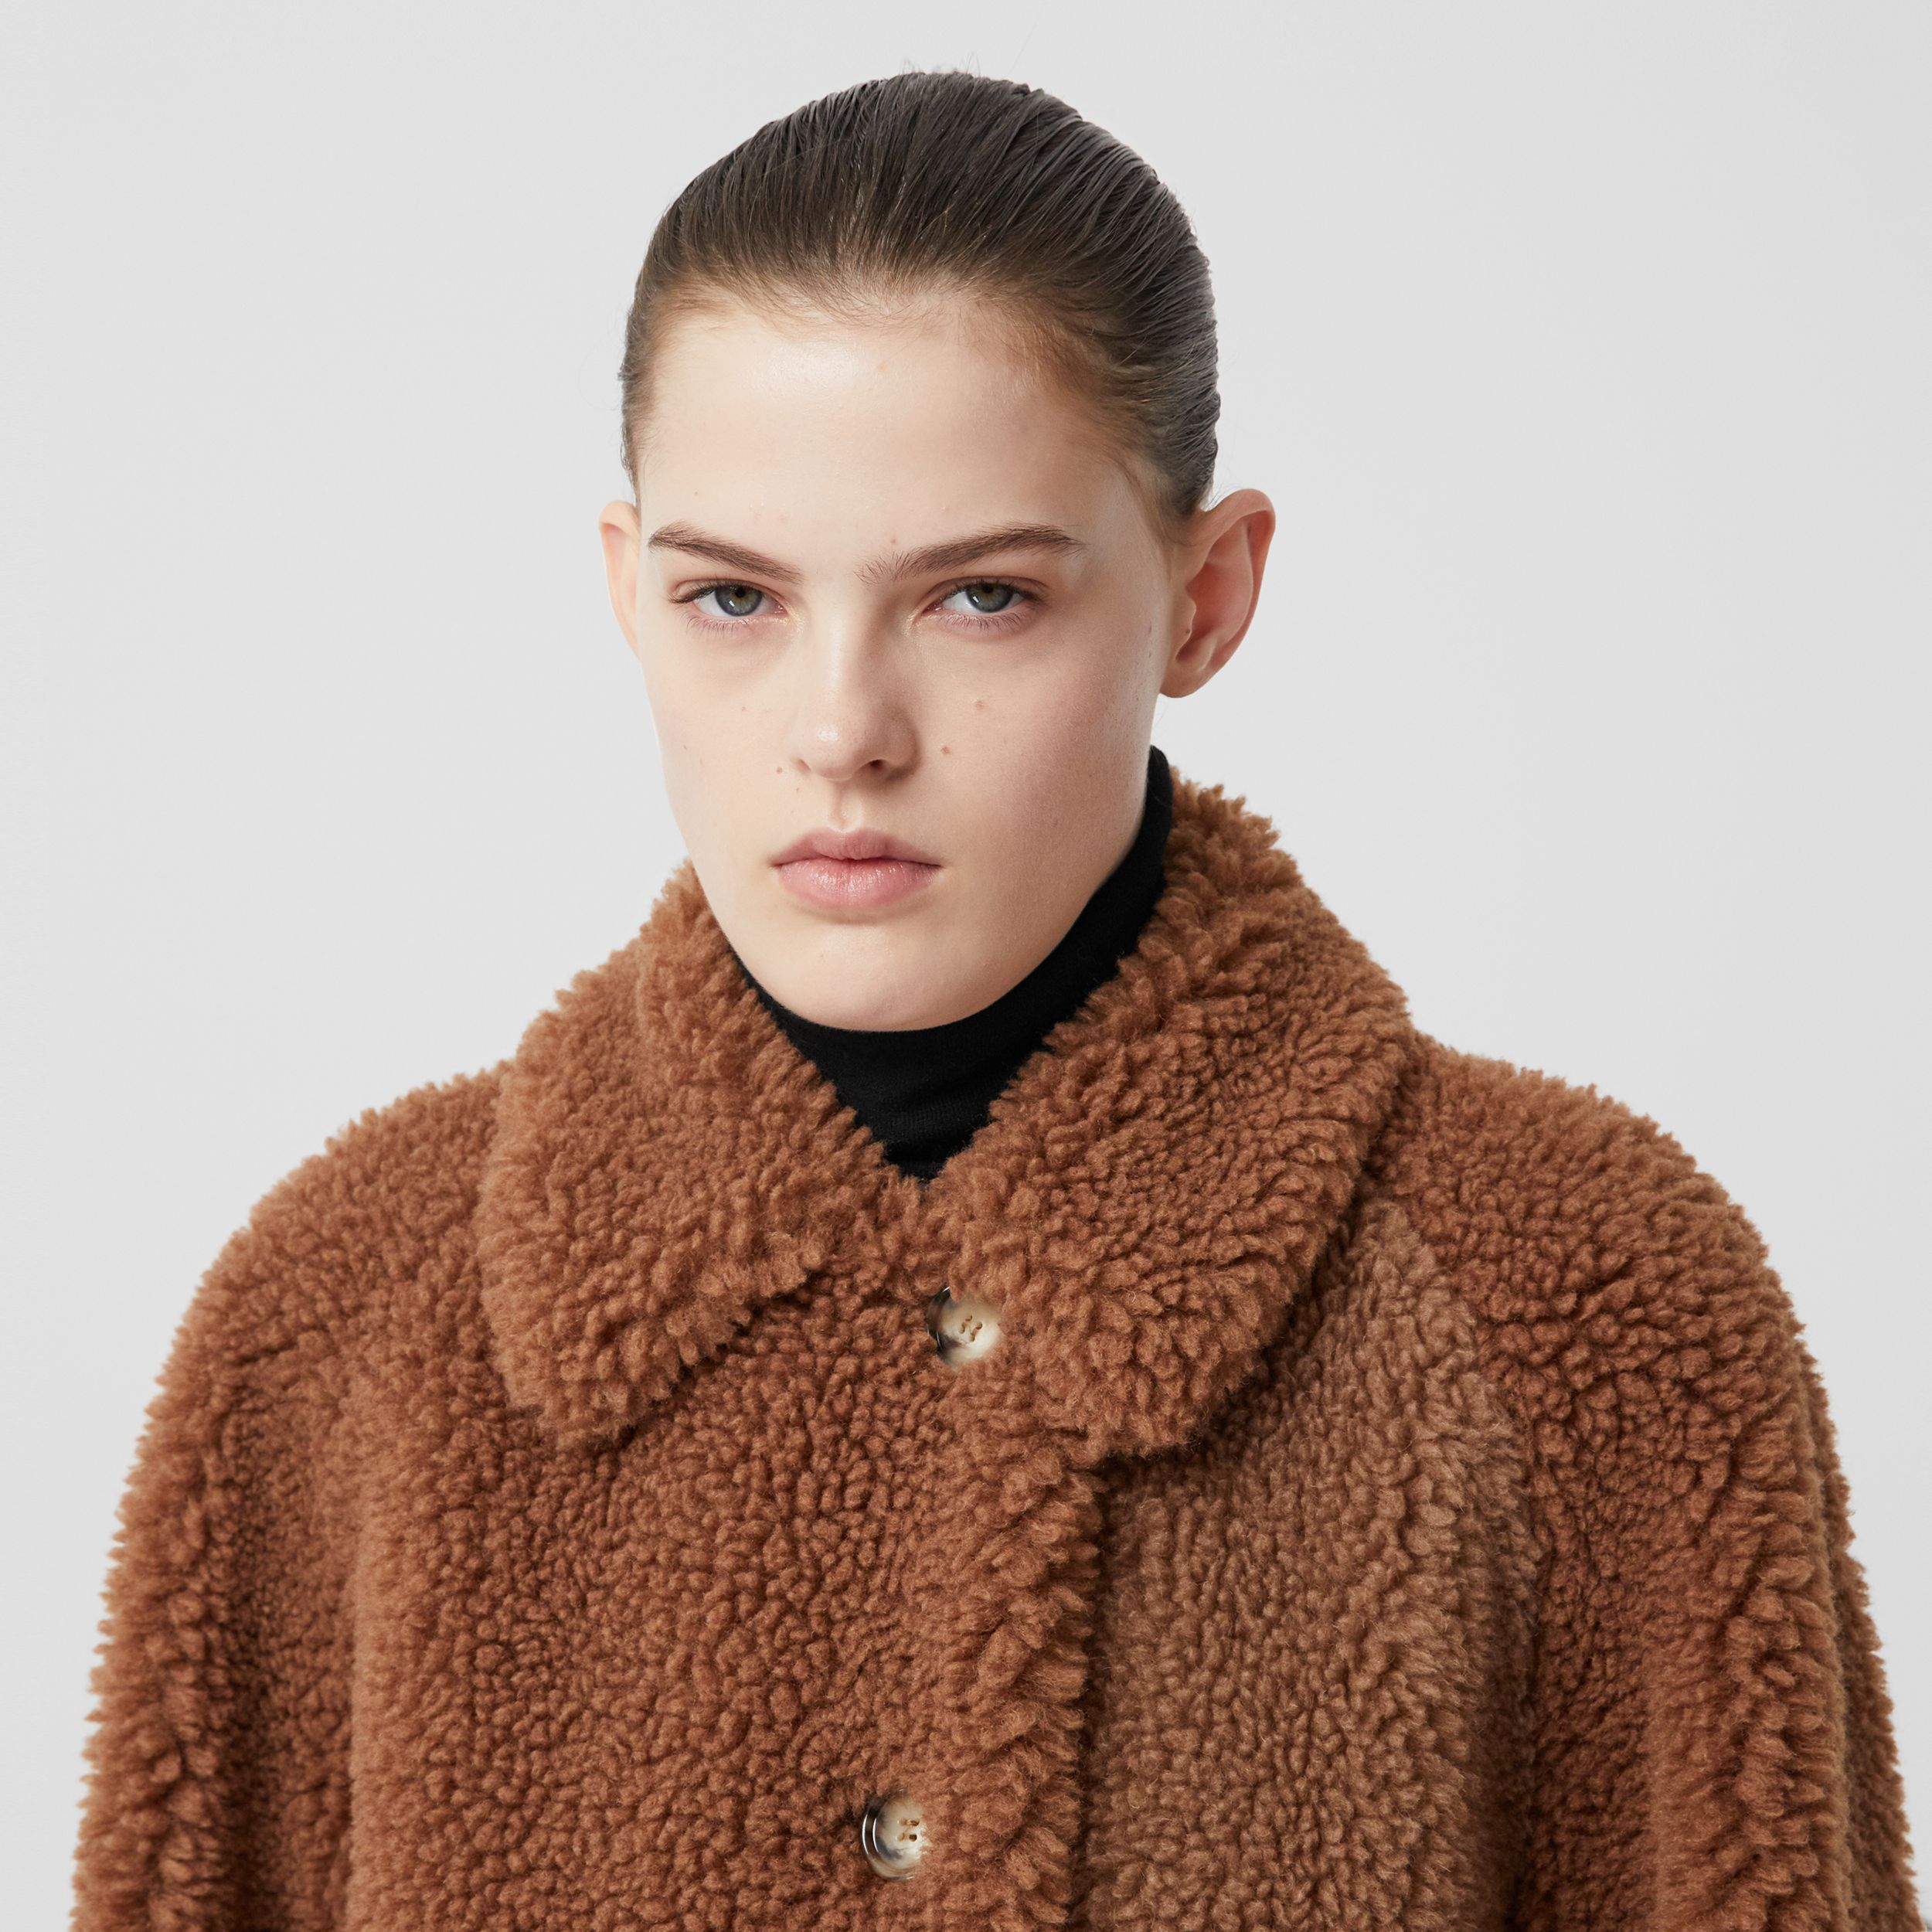 Faux Shearling and Camel Hair Blend Coat in Brown - Women | Burberry - 2